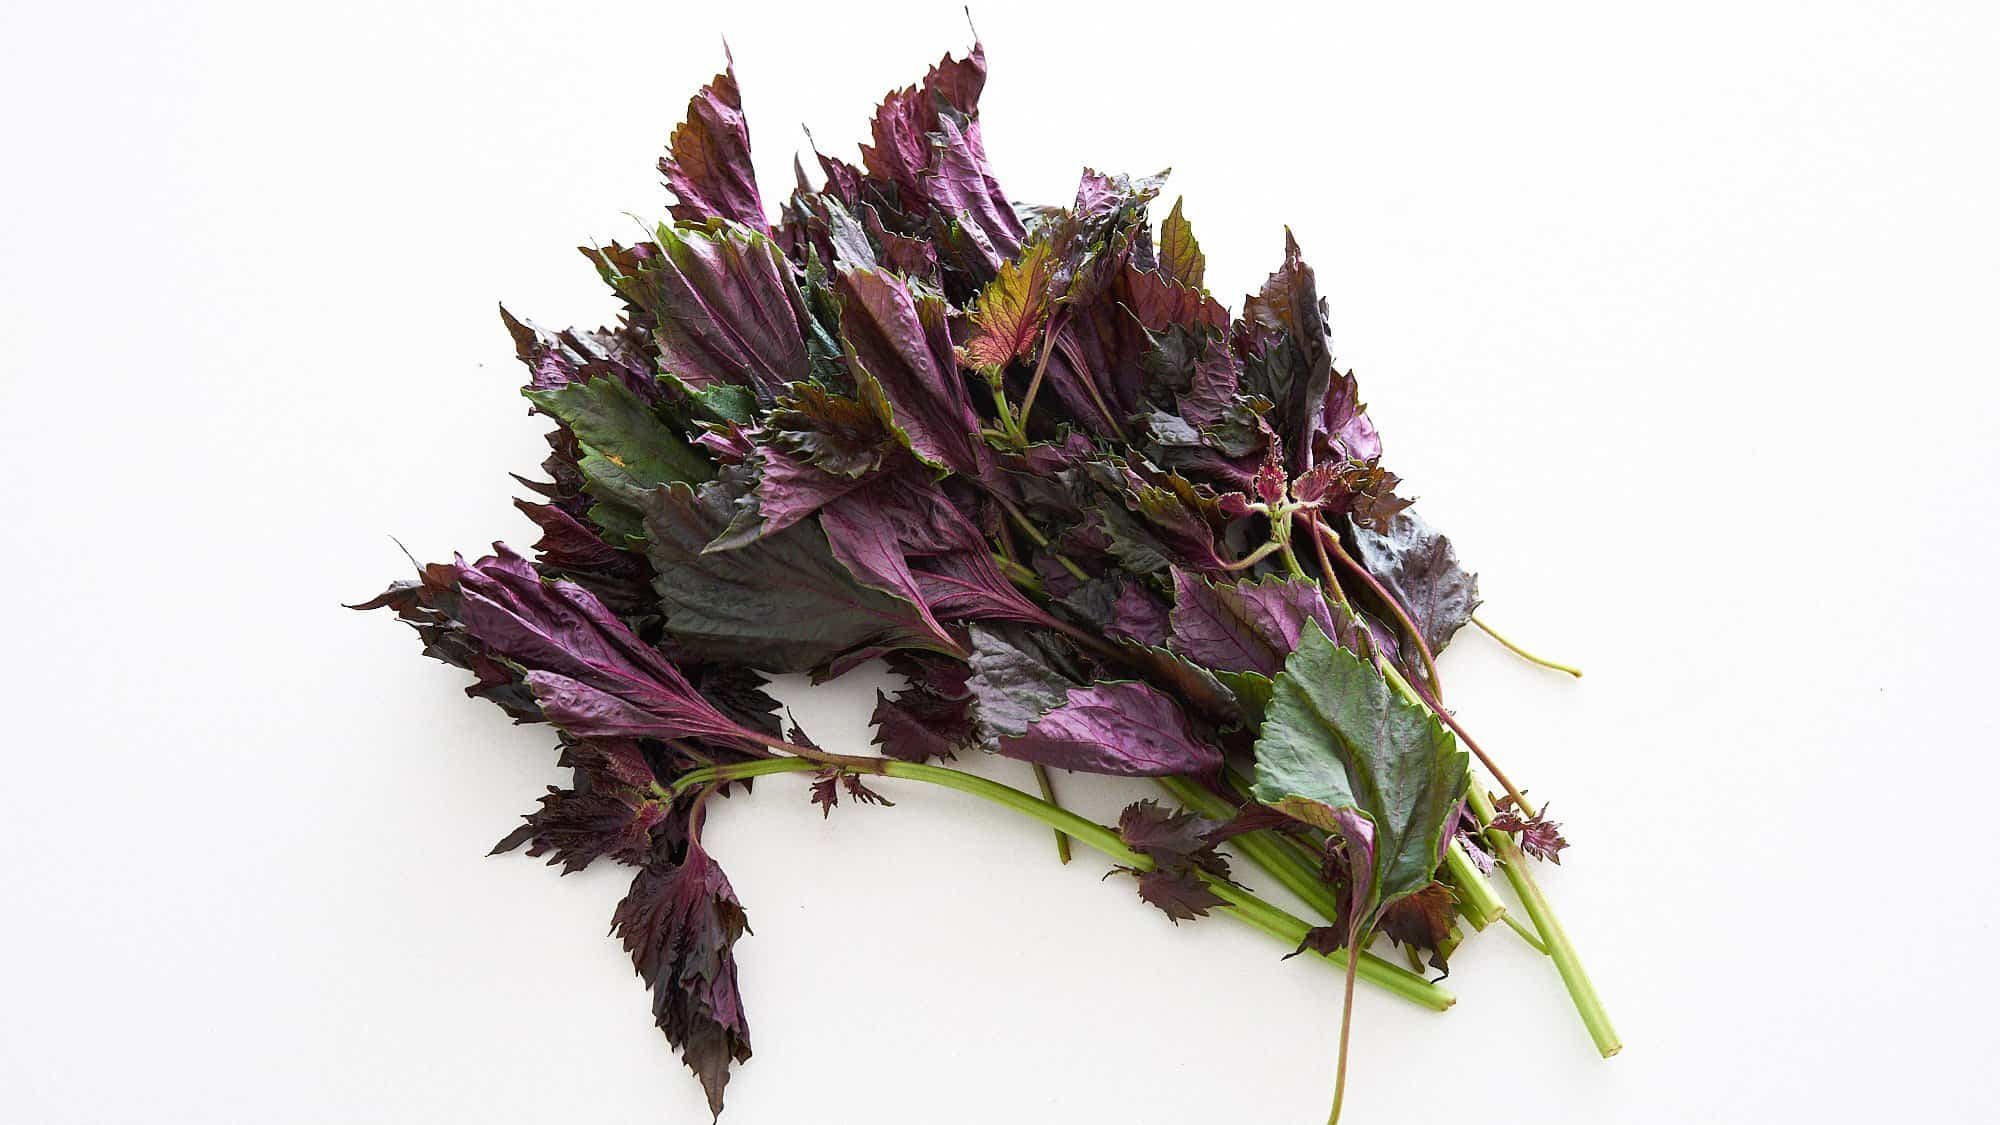 Red shiso leaves adds a wonderful fragrance and stunning pink hue to the ume juice.